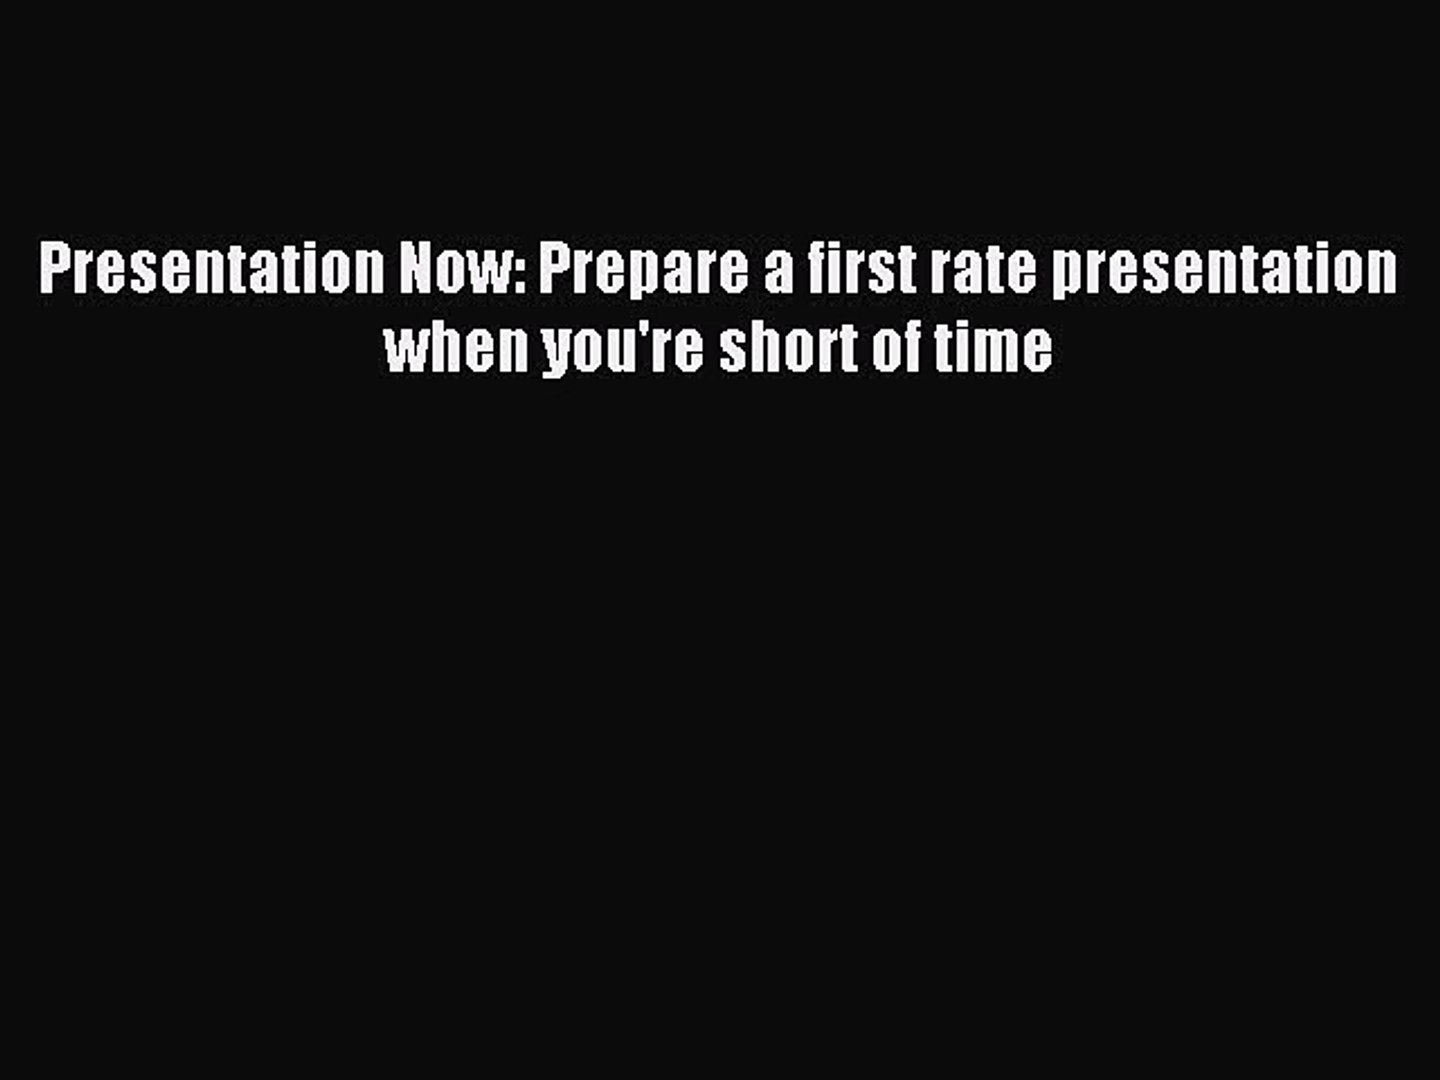 Download Presentation Now: Prepare a first rate presentation when you're short of time PDF